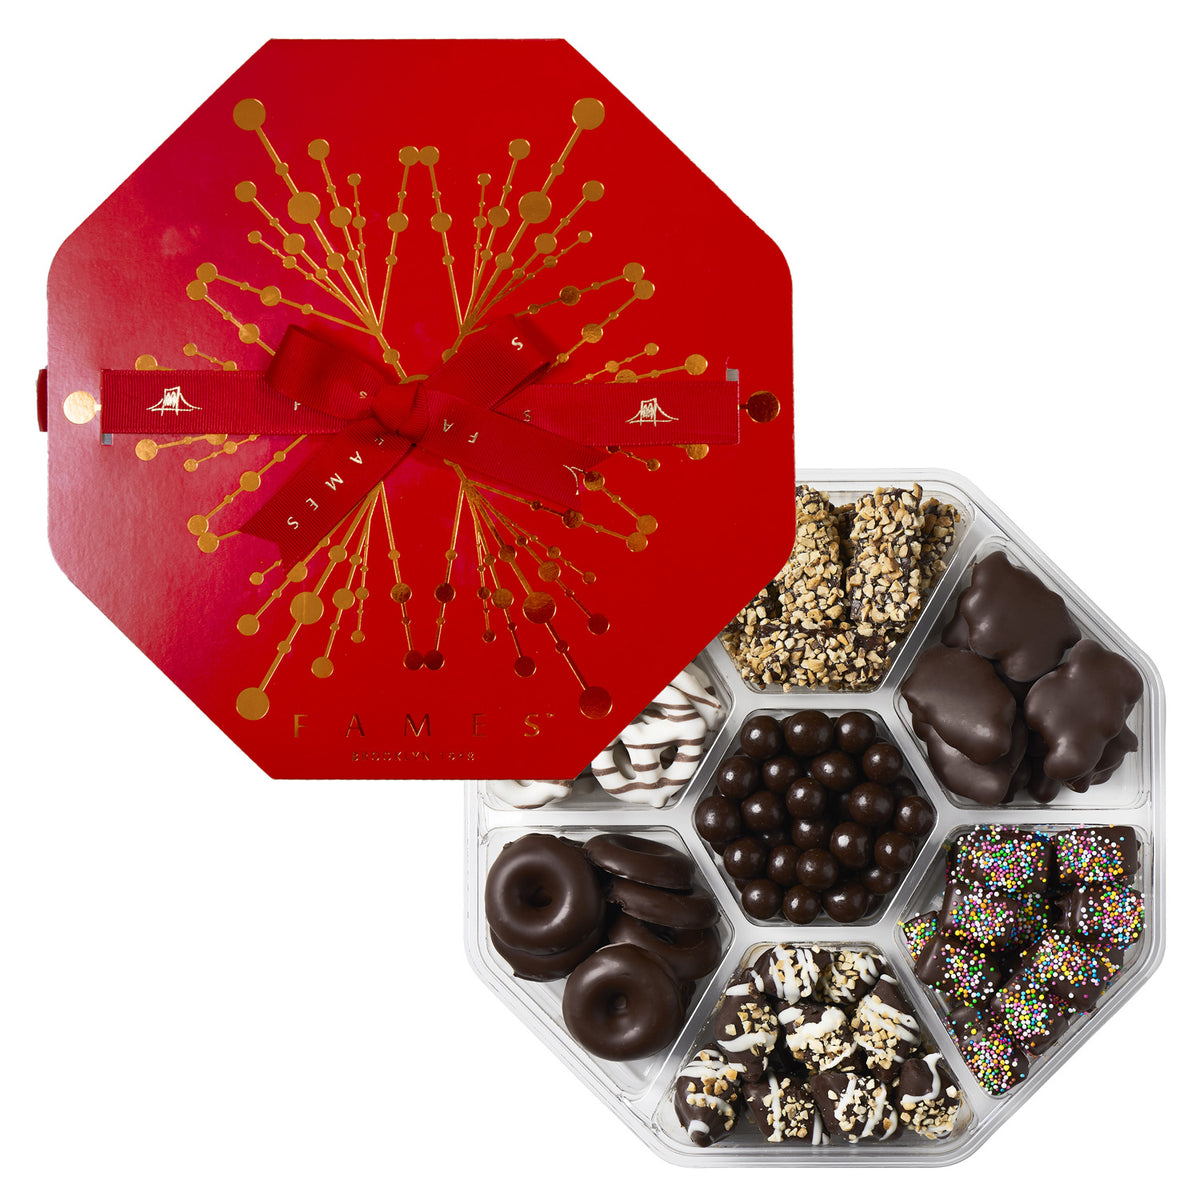 Seventh Heaven Chocolate Holiday Gift Assortment